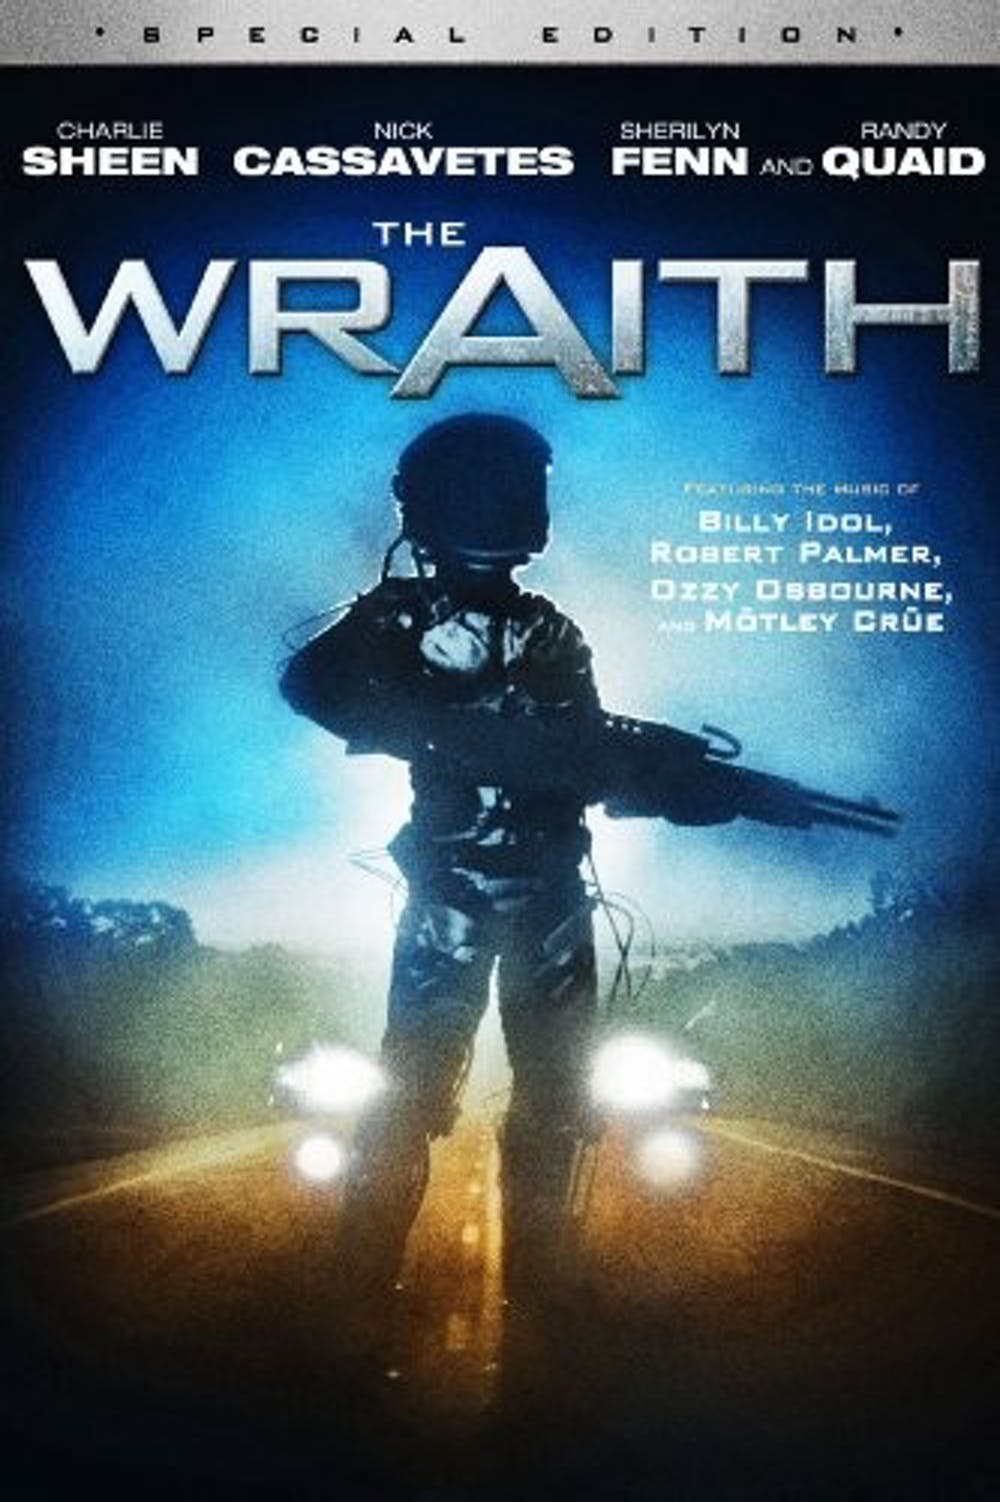 Grindhouse Review: 'The Wraith'